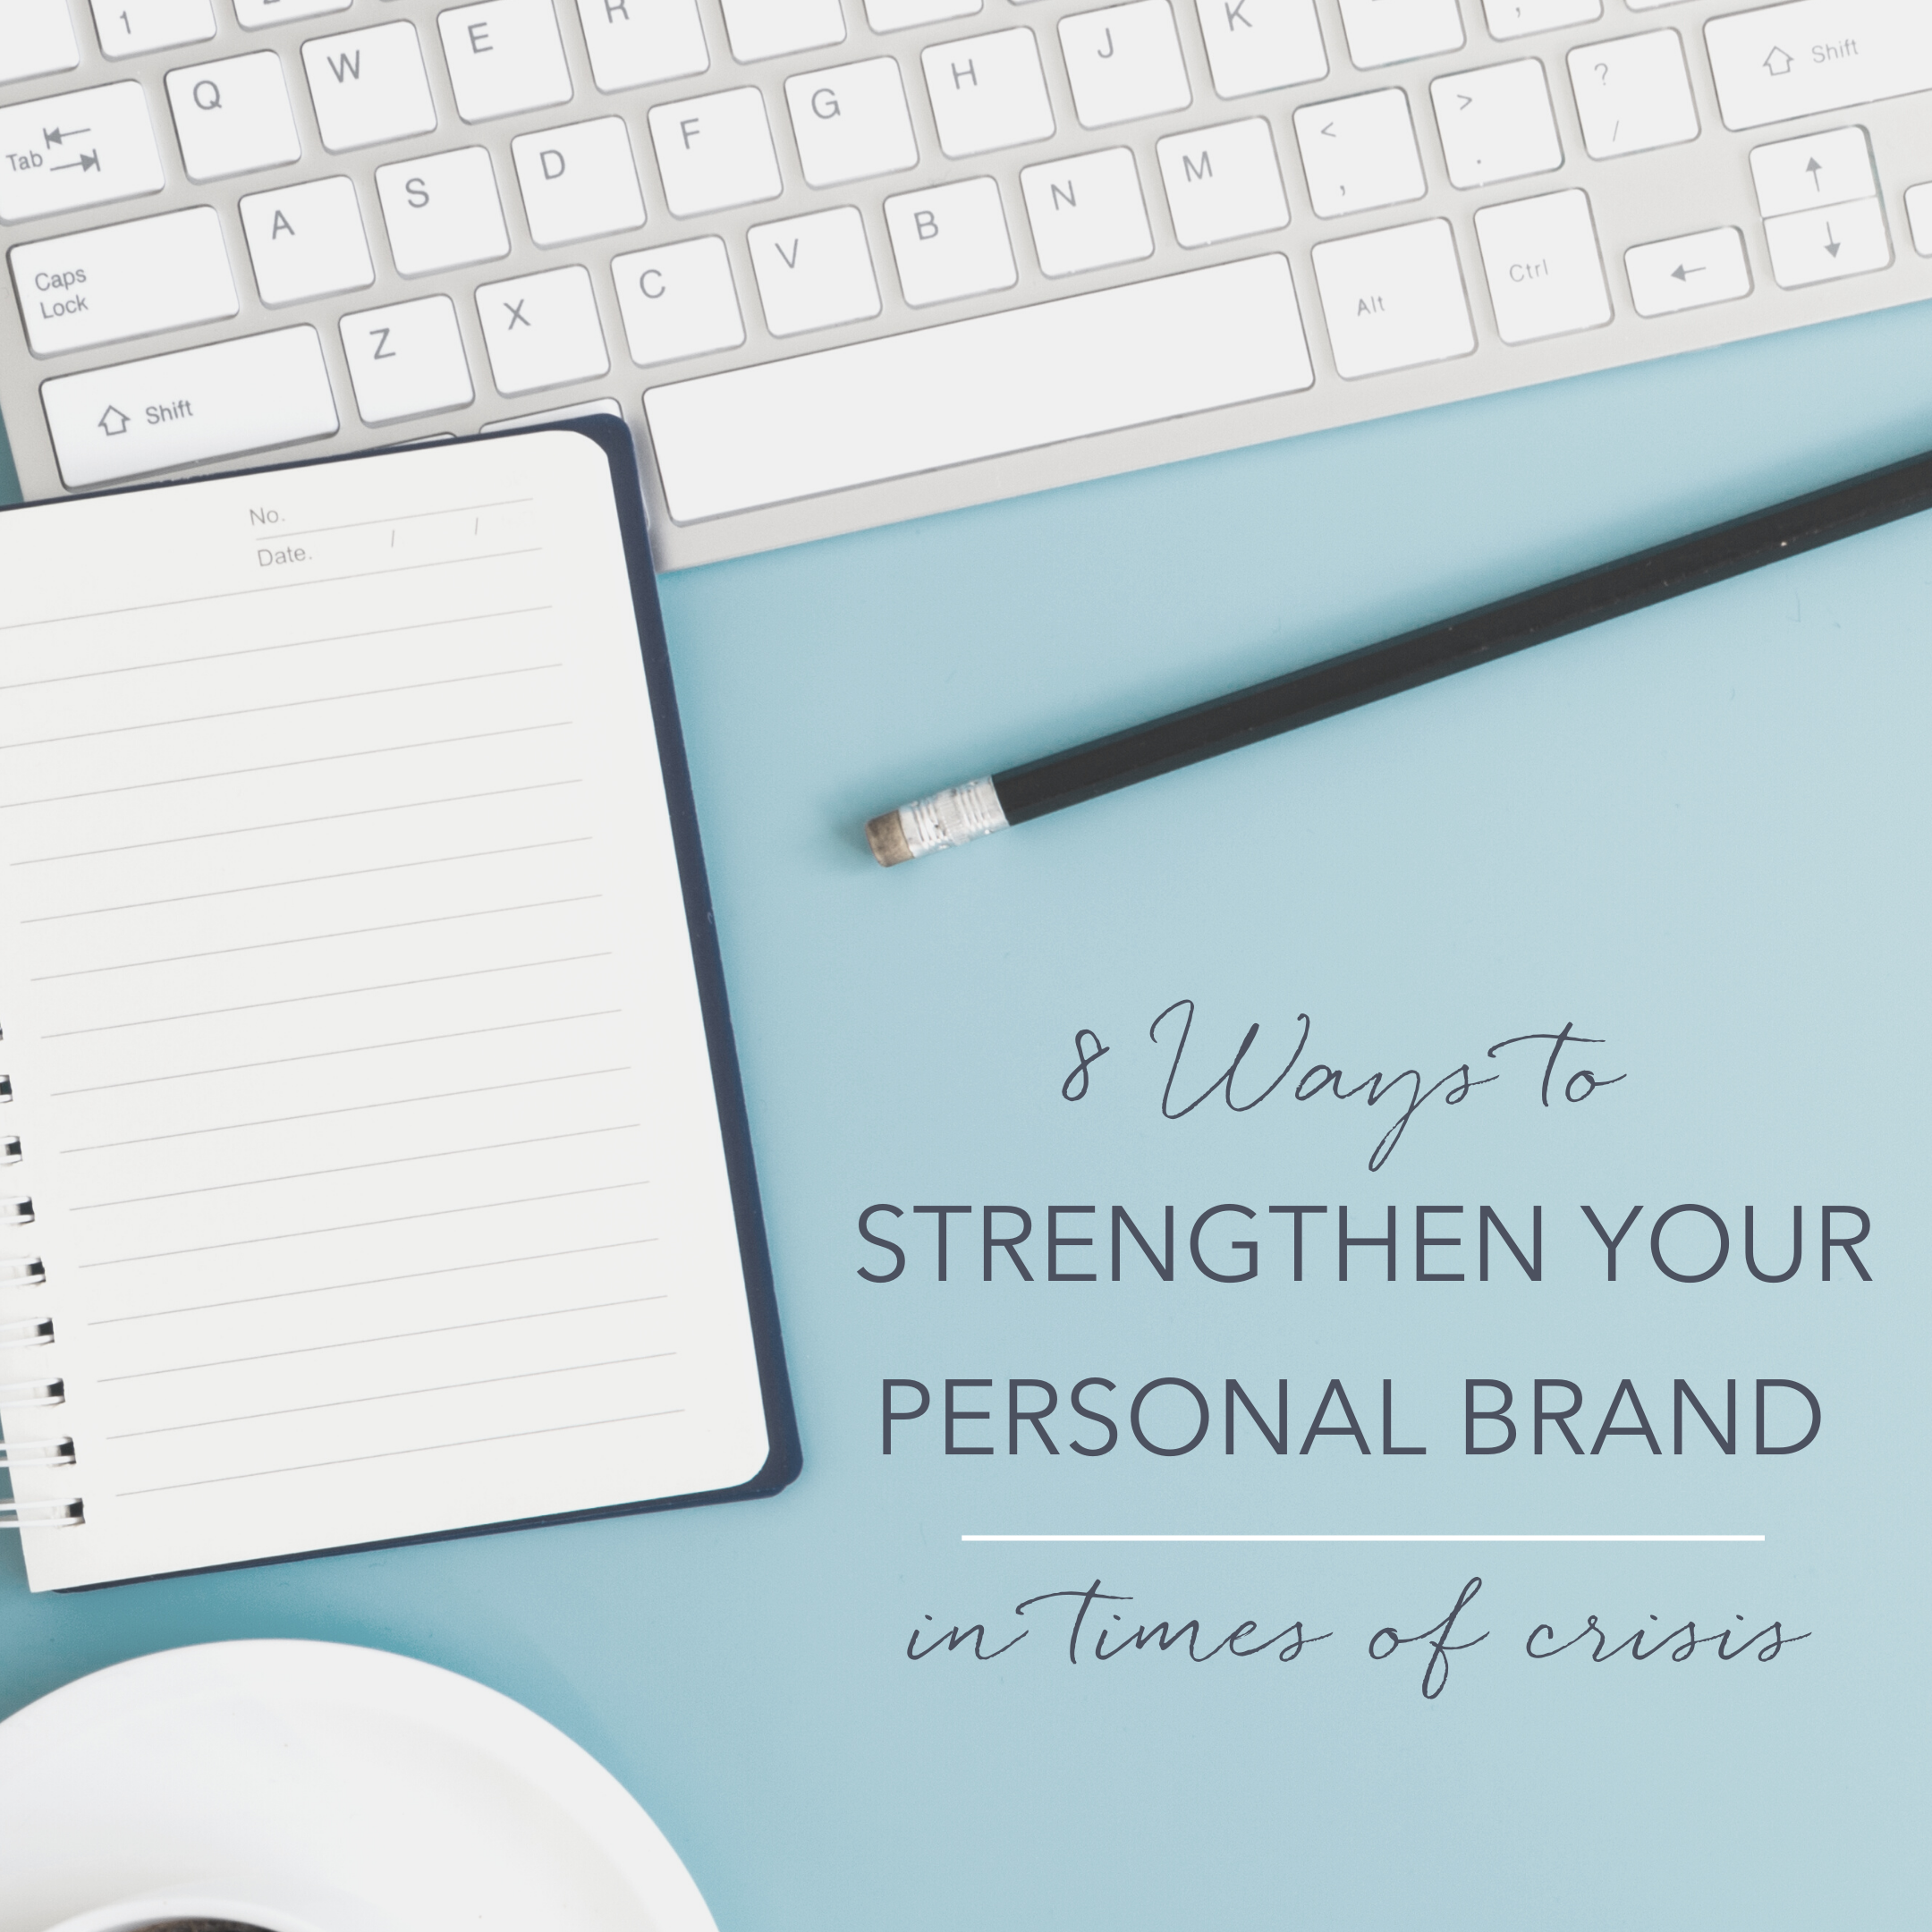 8 ways to strengthen your brand